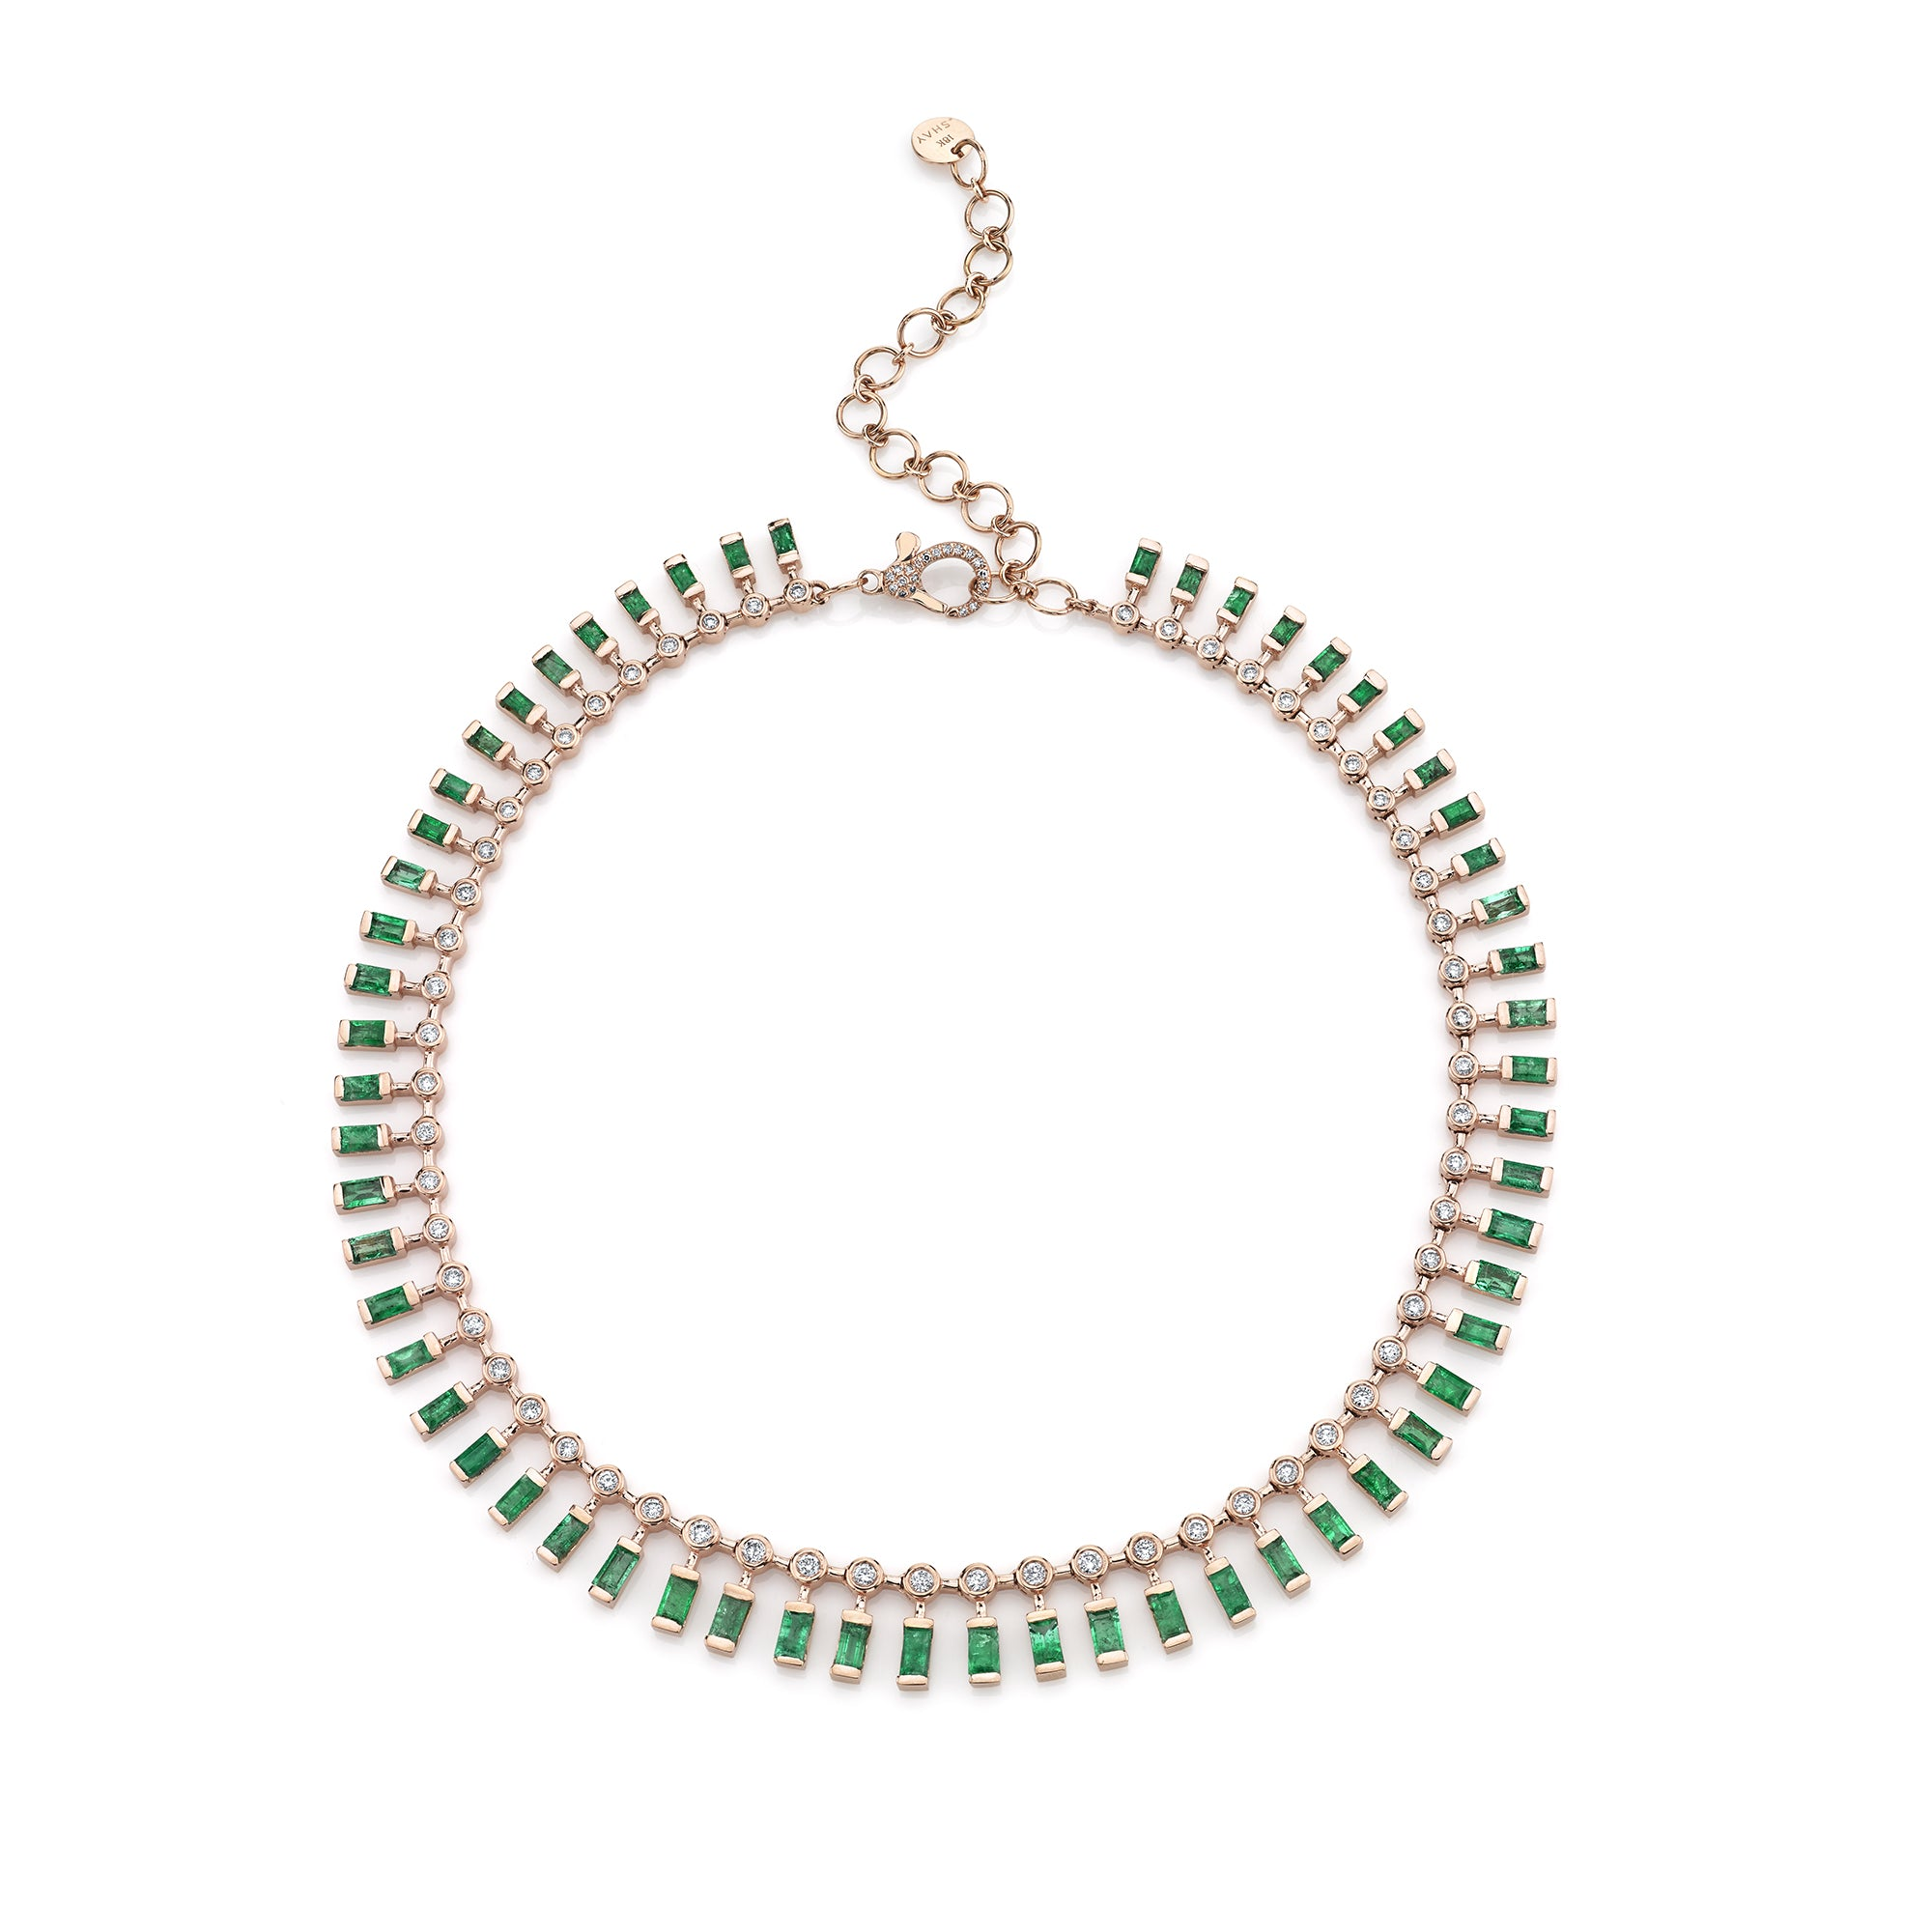 Dot Dash Emerald & Diamond Necklace by Shay for Broken English Jewelry